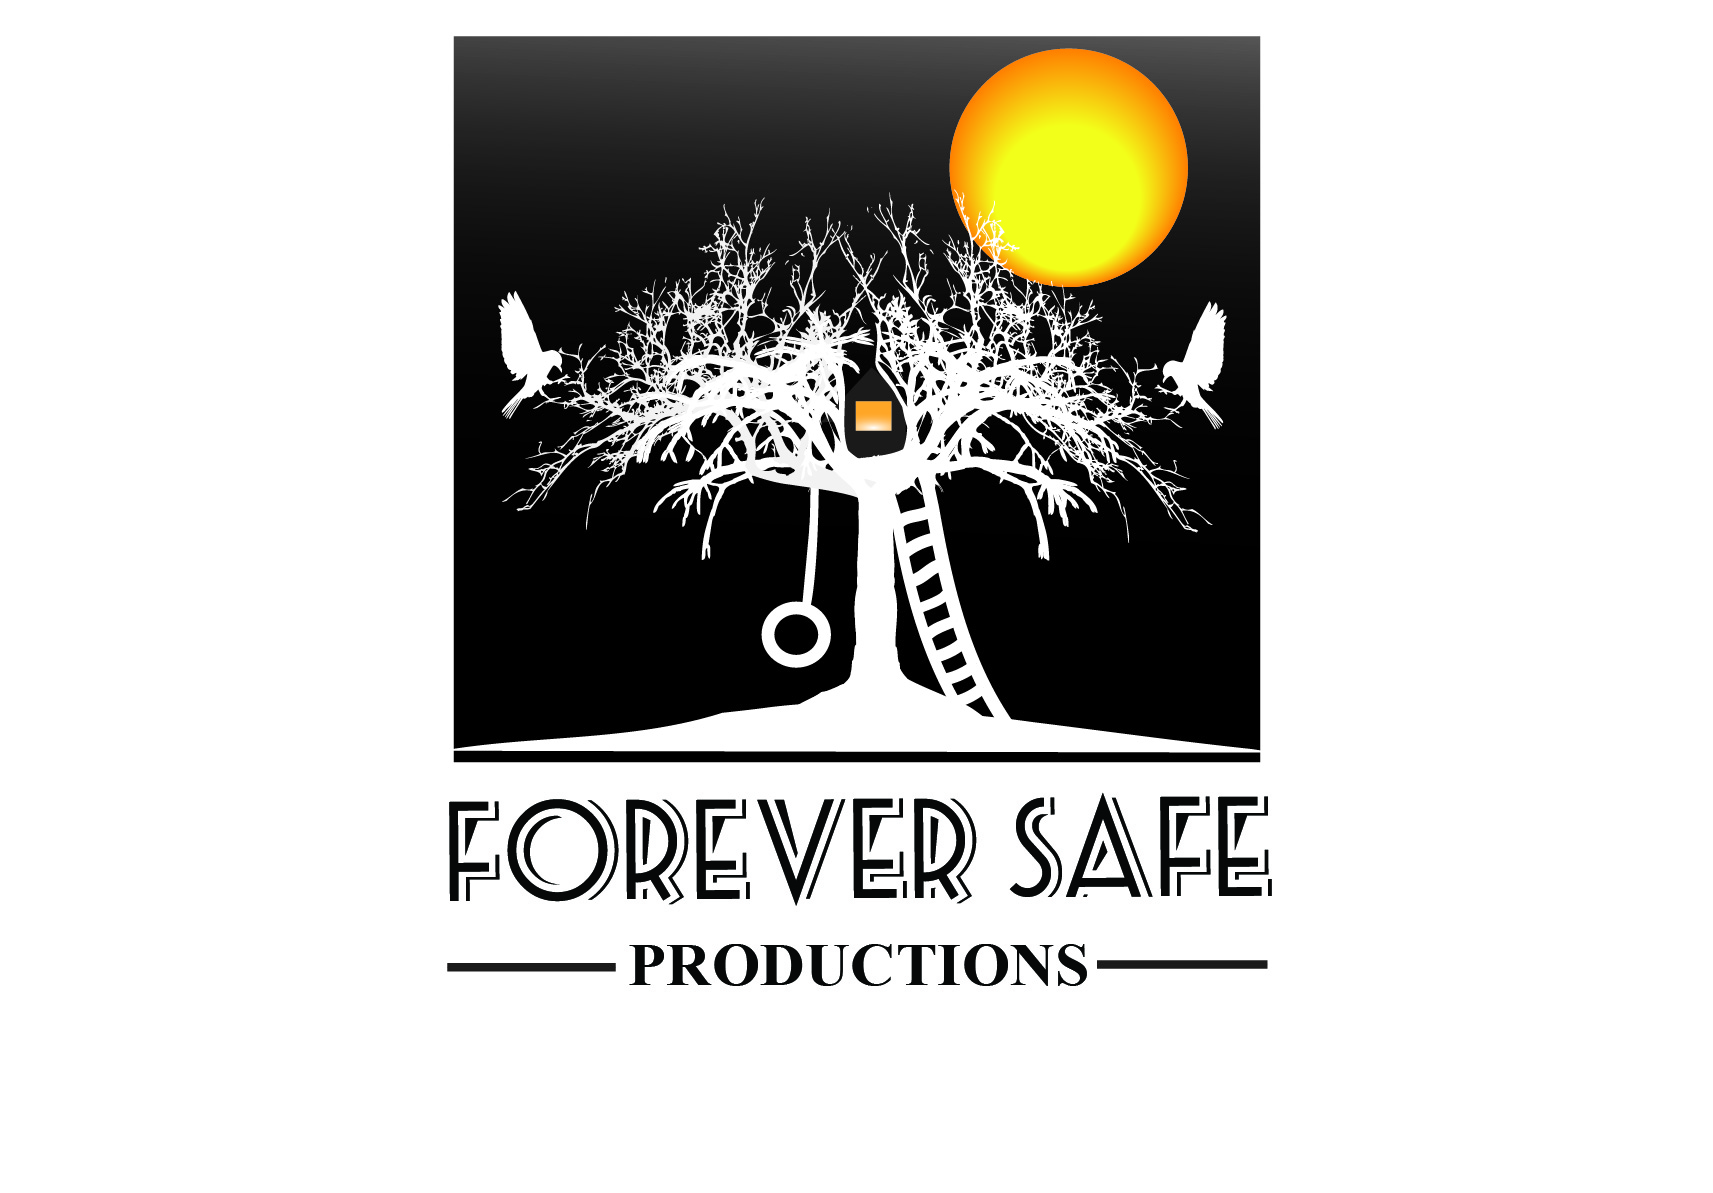 Logo Design by lde05 - Entry No. 42 in the Logo Design Contest Inspiring Logo Design for Forever Safe Productions.